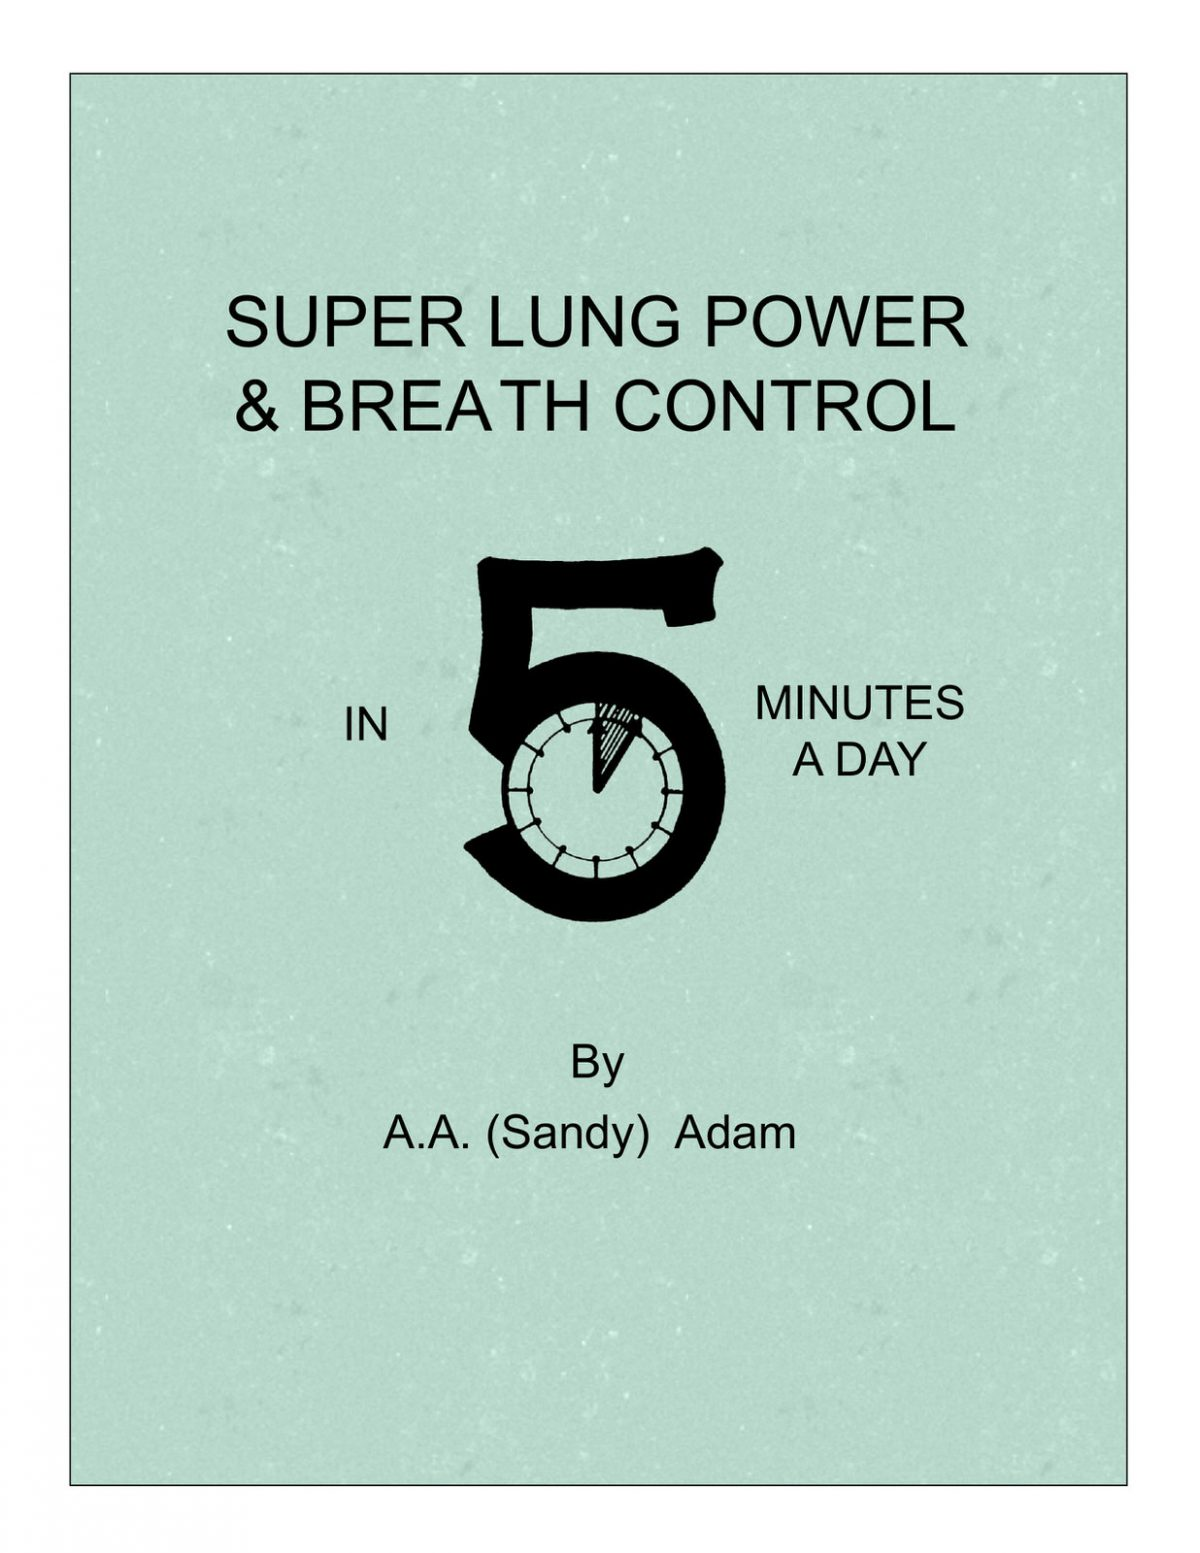 Adam, Super Lung Power and Breath Control